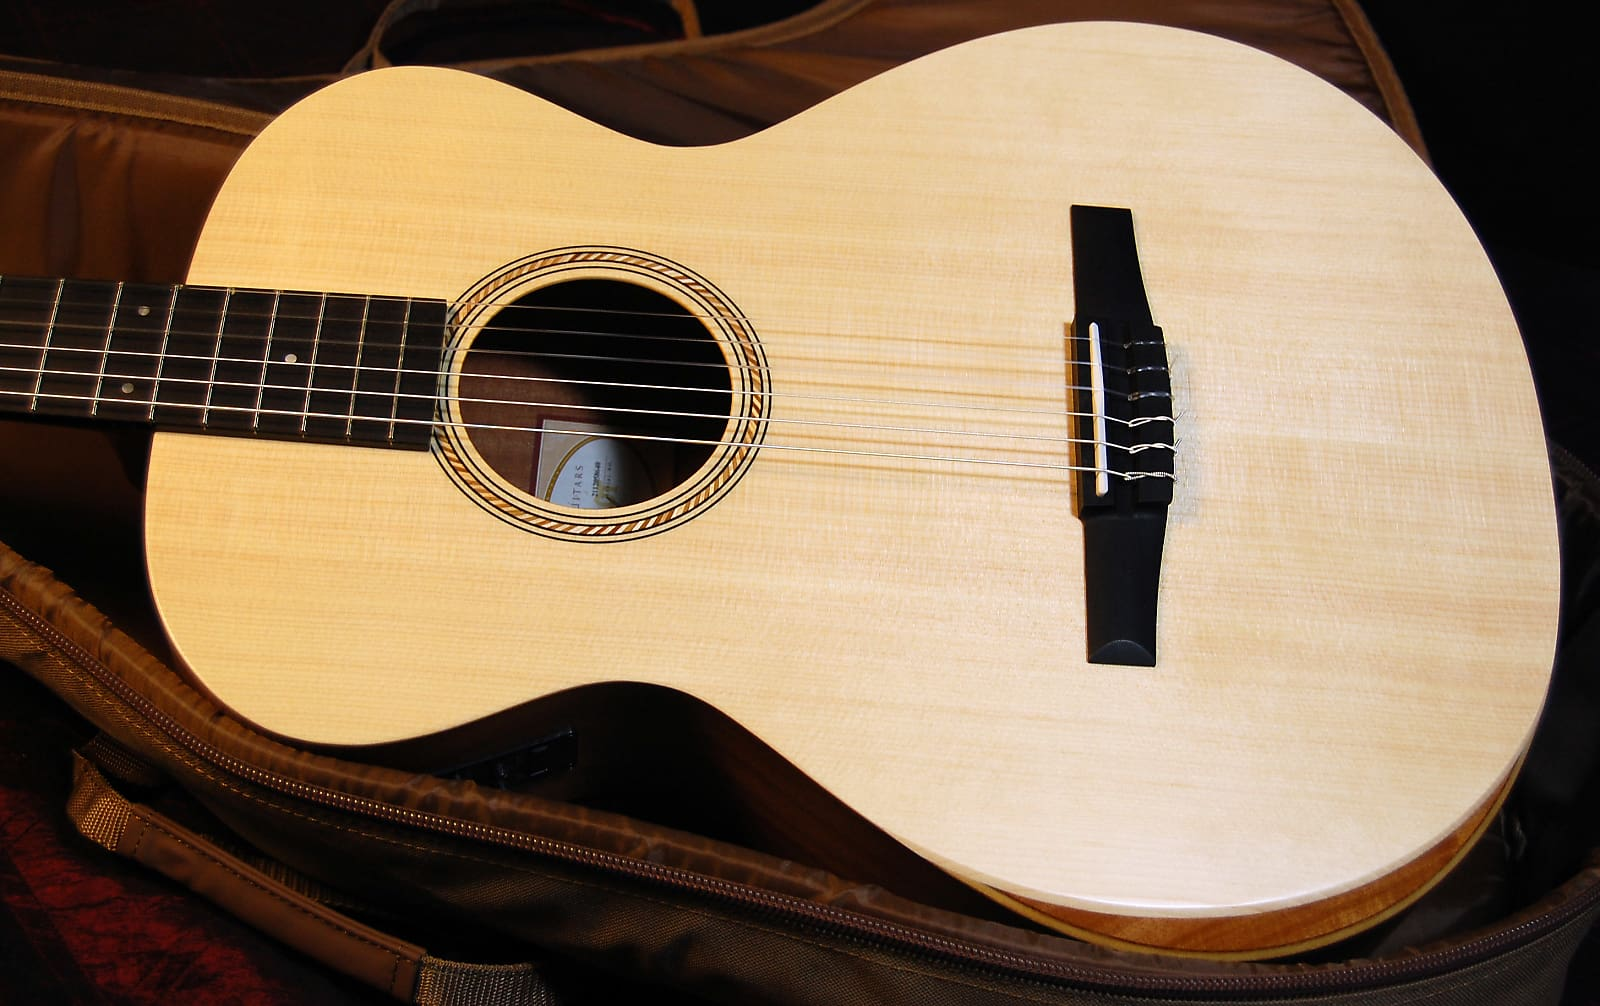 Taylor A12e Nylon Academy Series Grand Concert Acoustic/Electric Guitar Natural Authorized Dealer